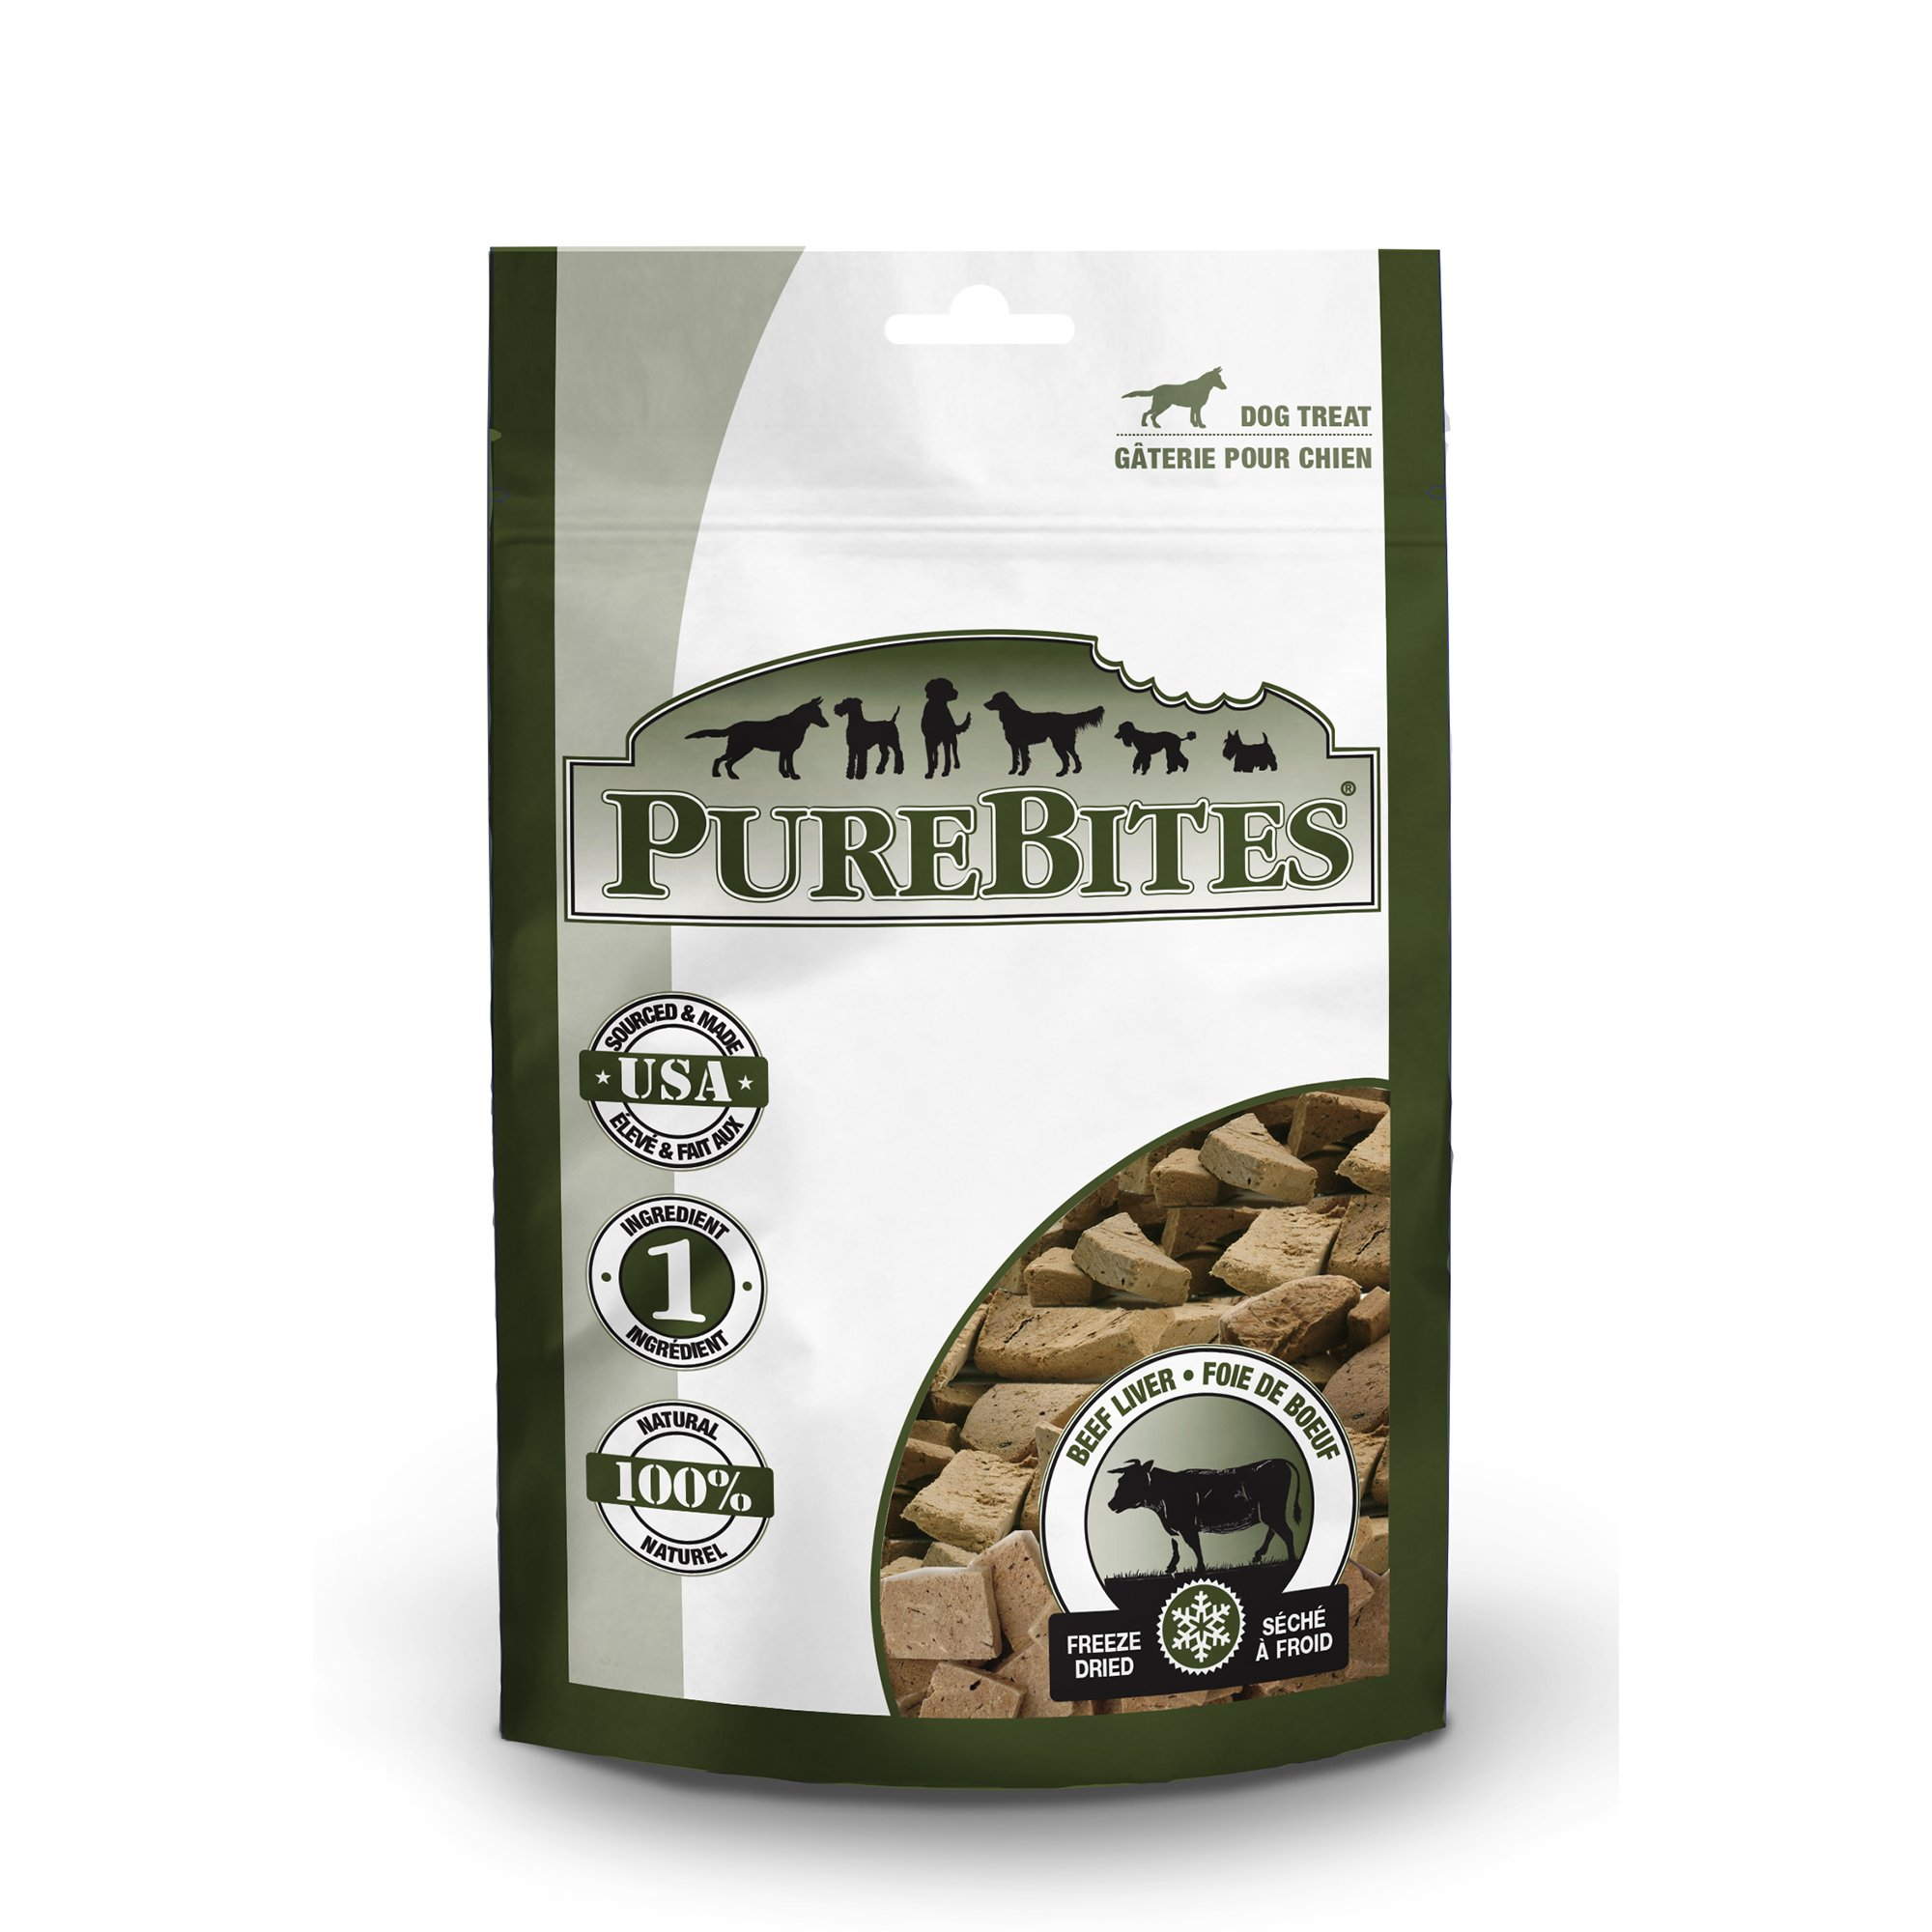 Image of Pure Bites Beef Liver Dog Treats, 2 oz.